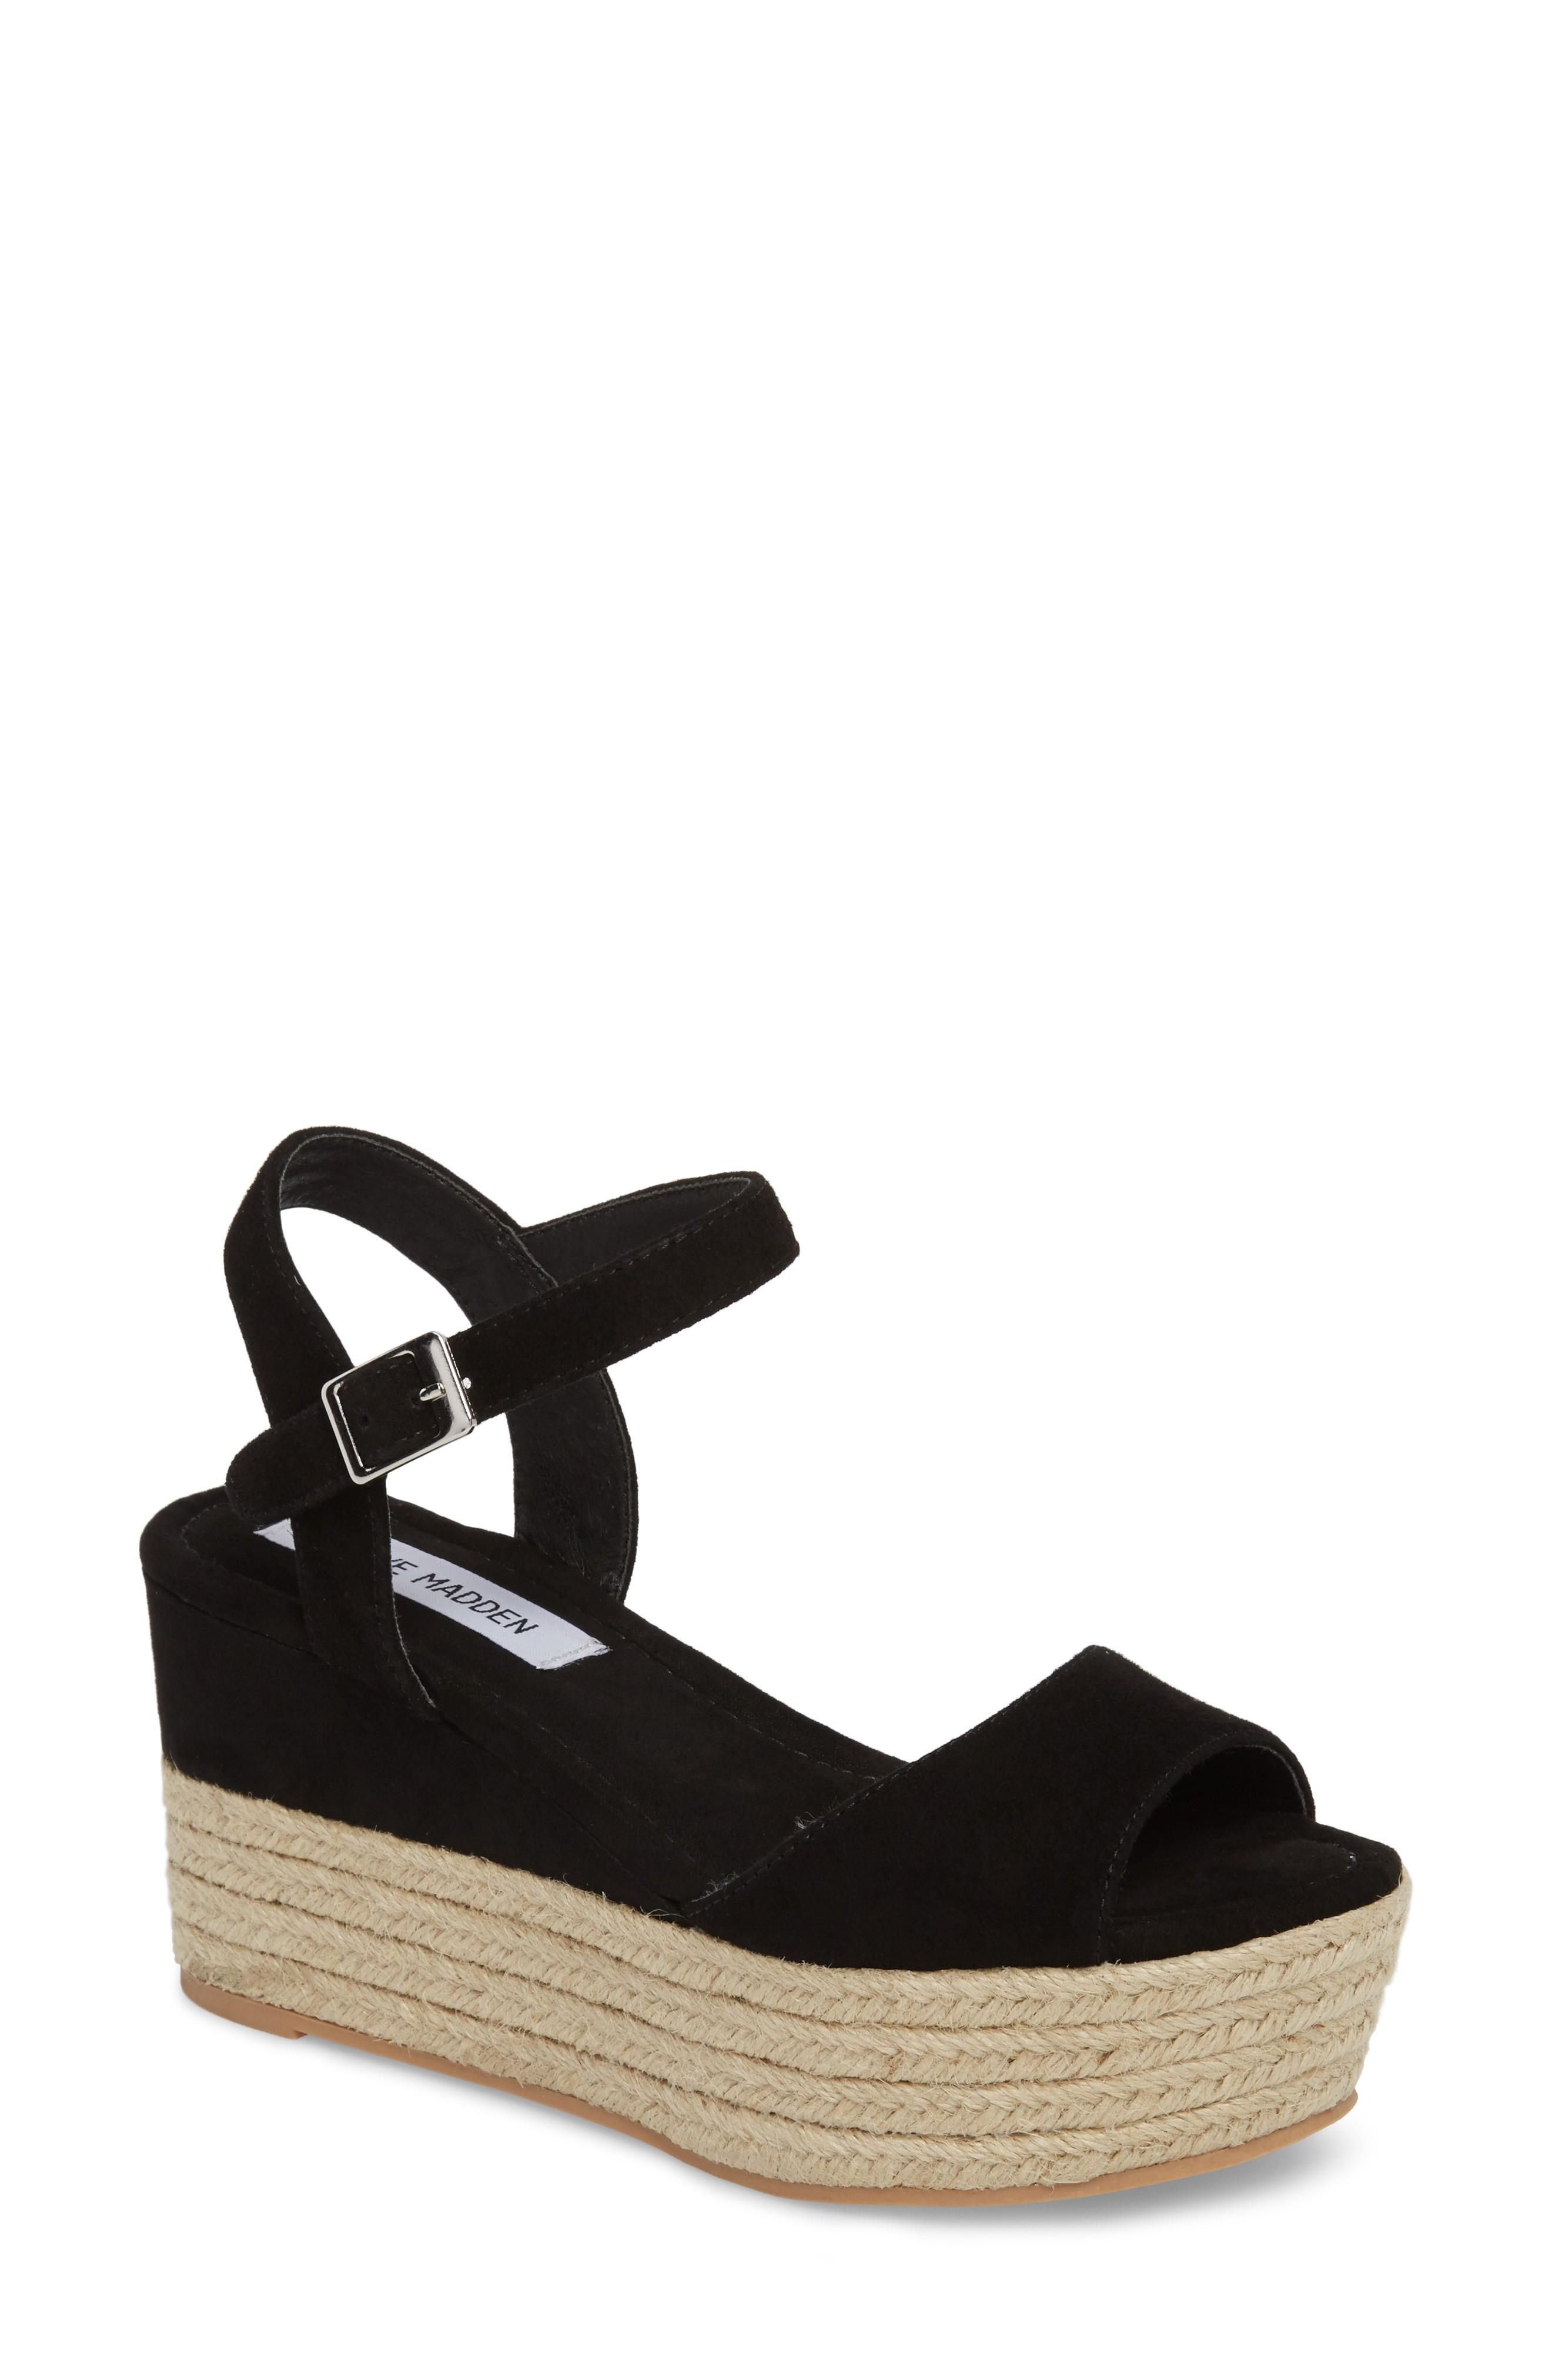 42932c5a9c8 Style Name  Steve Madden Kianna Espadrille Wedge Sandal (Women). Style  Number  5562322. Available in stores.